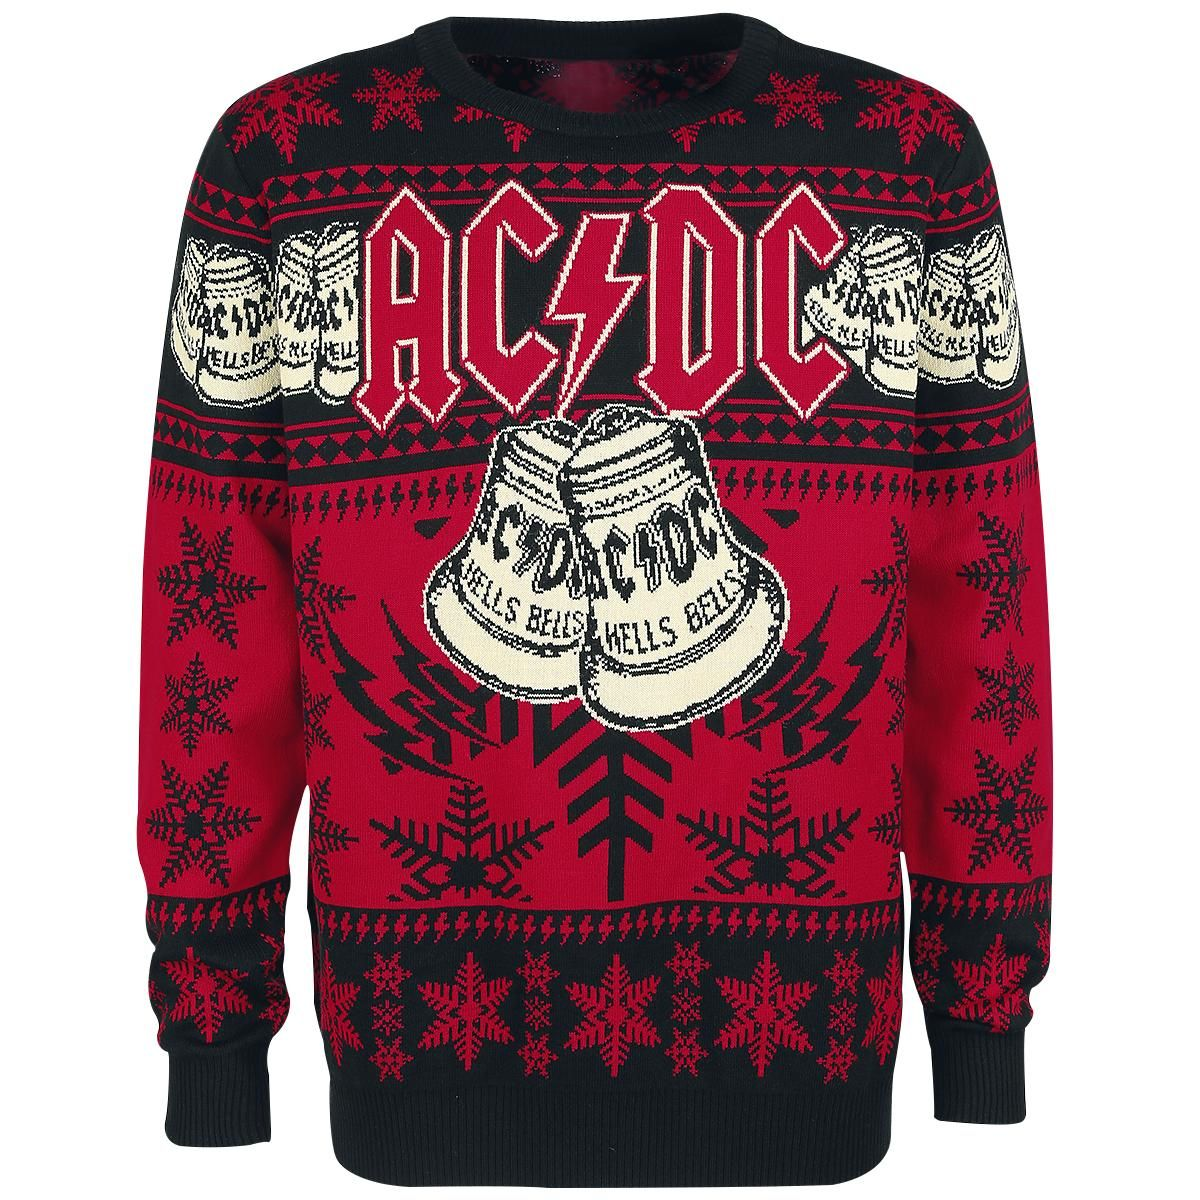 Tony wears this the entirety of December, no matter what